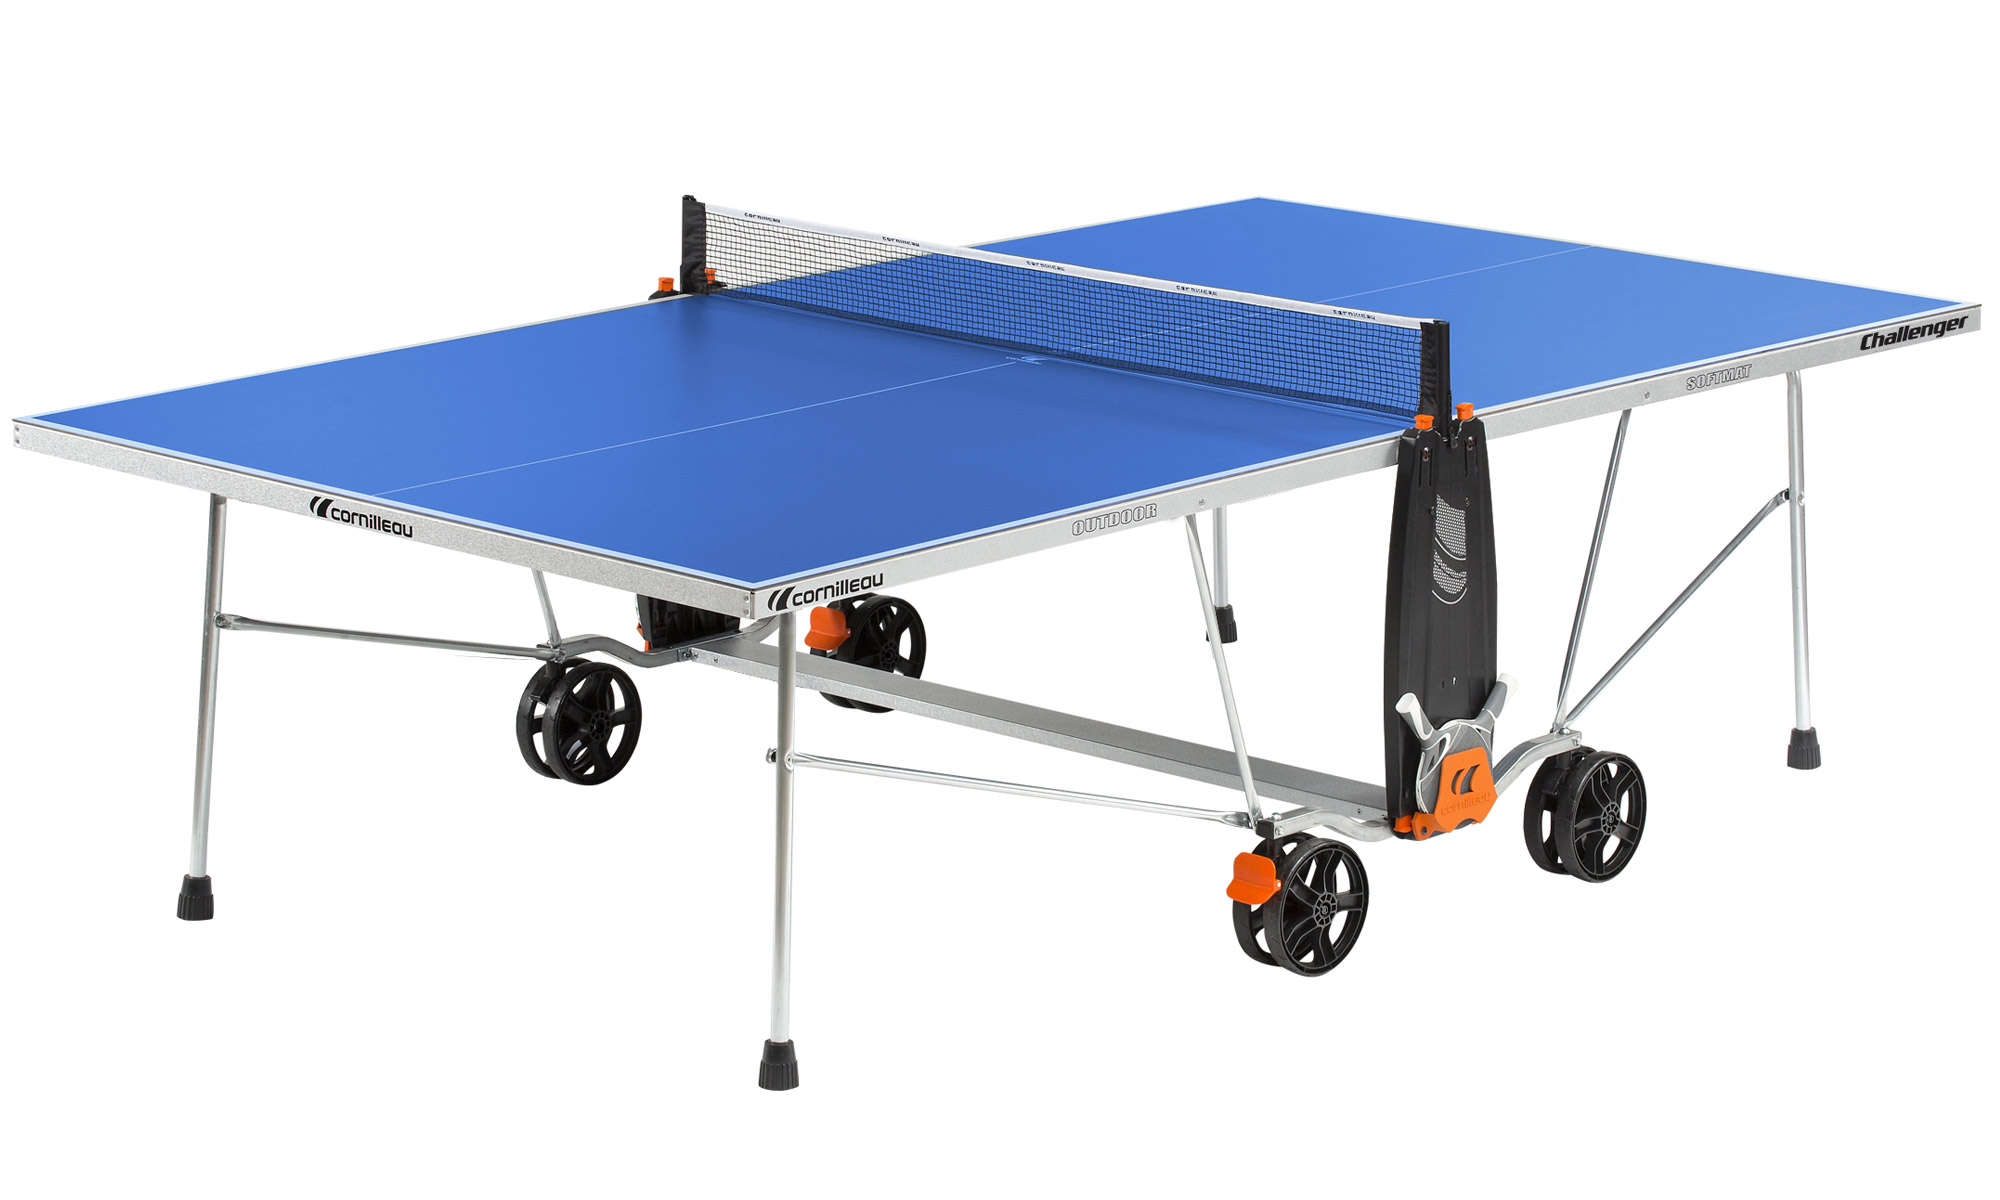 Cornilleau Challenger Outdoor Table Tennis Table